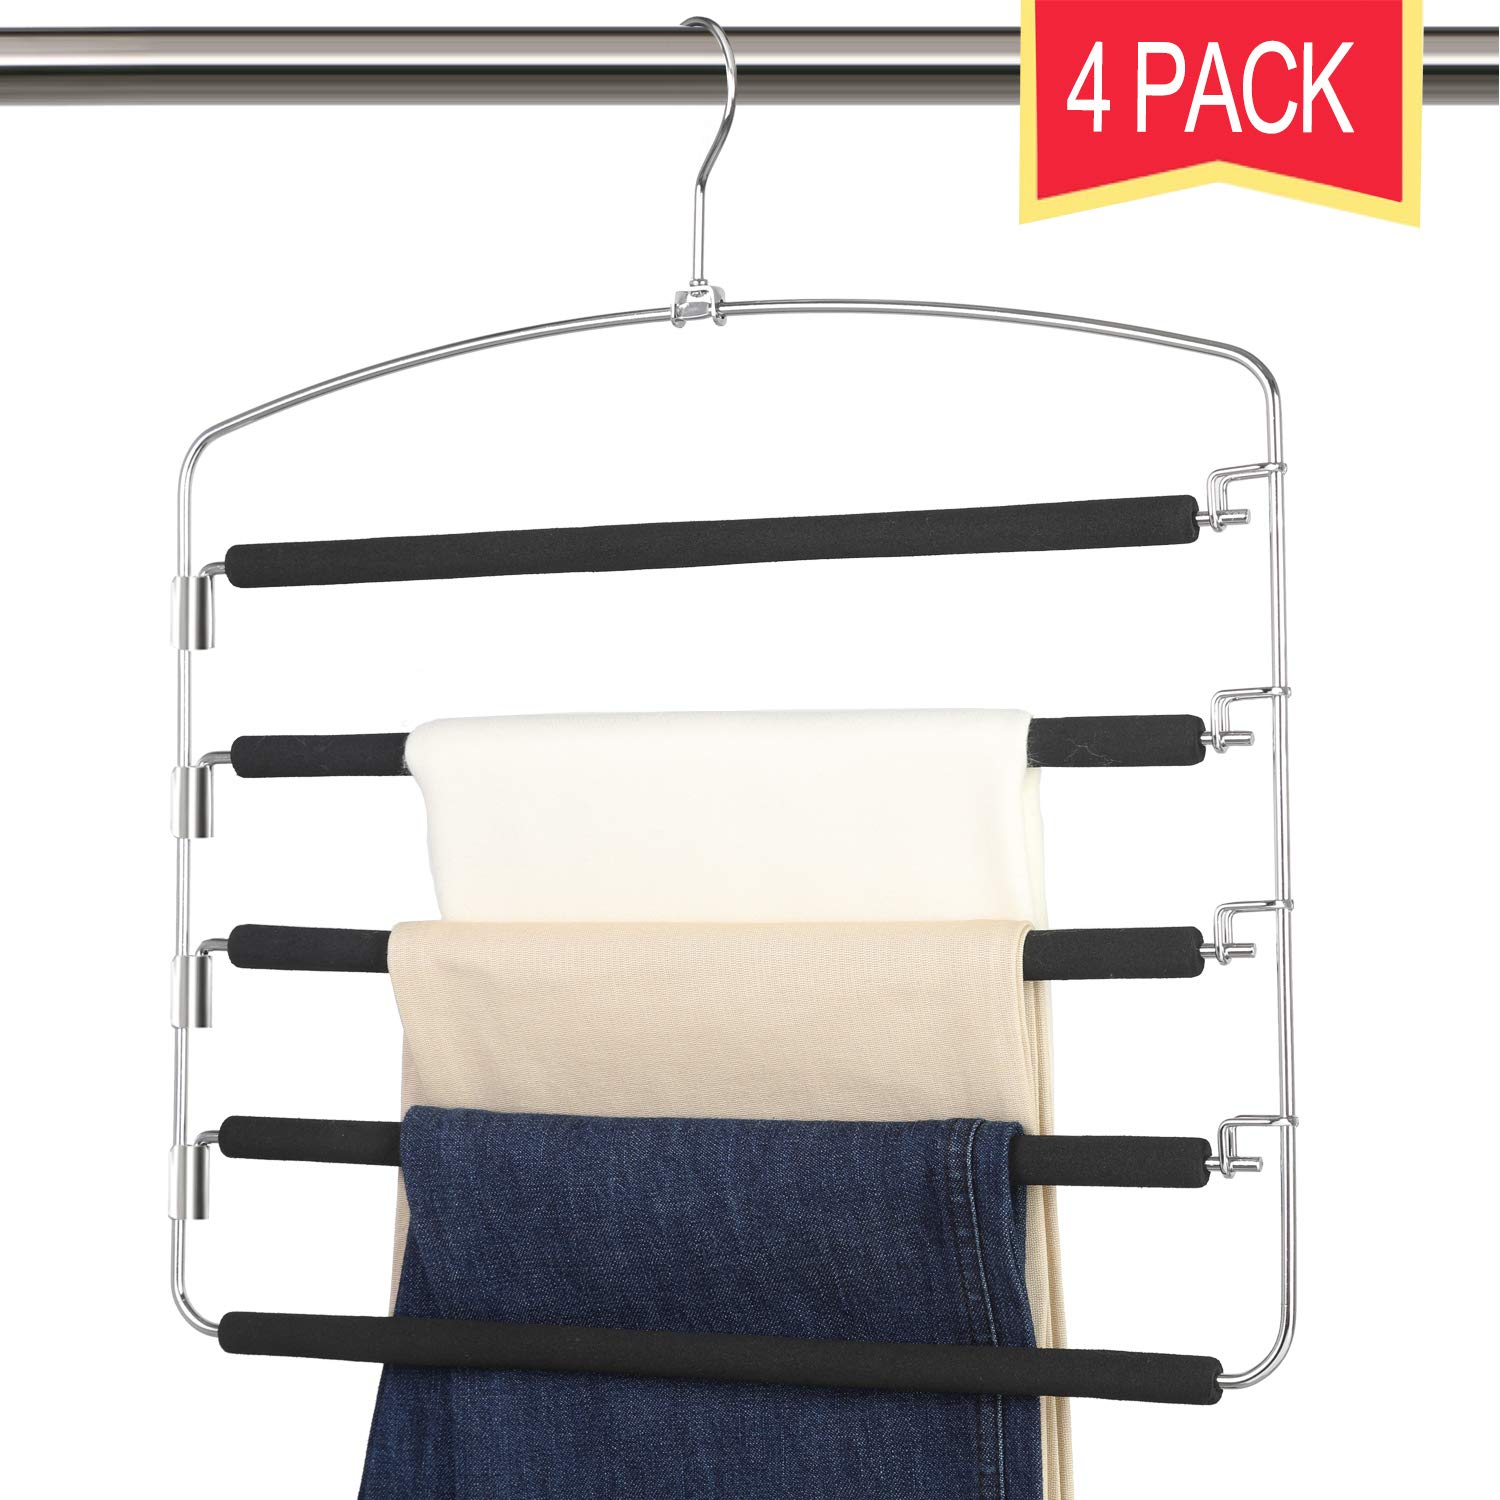 Giftol Pants Hangers 5 Layers Stainless Steel Non-Slip Foam Padded Swing Arm Space Saving Clothes Slack Hangers Closet Storage Organizer for Pants Jeans Trousers Skirts Scarf Ties Towels(Pack of 4) by Giftol